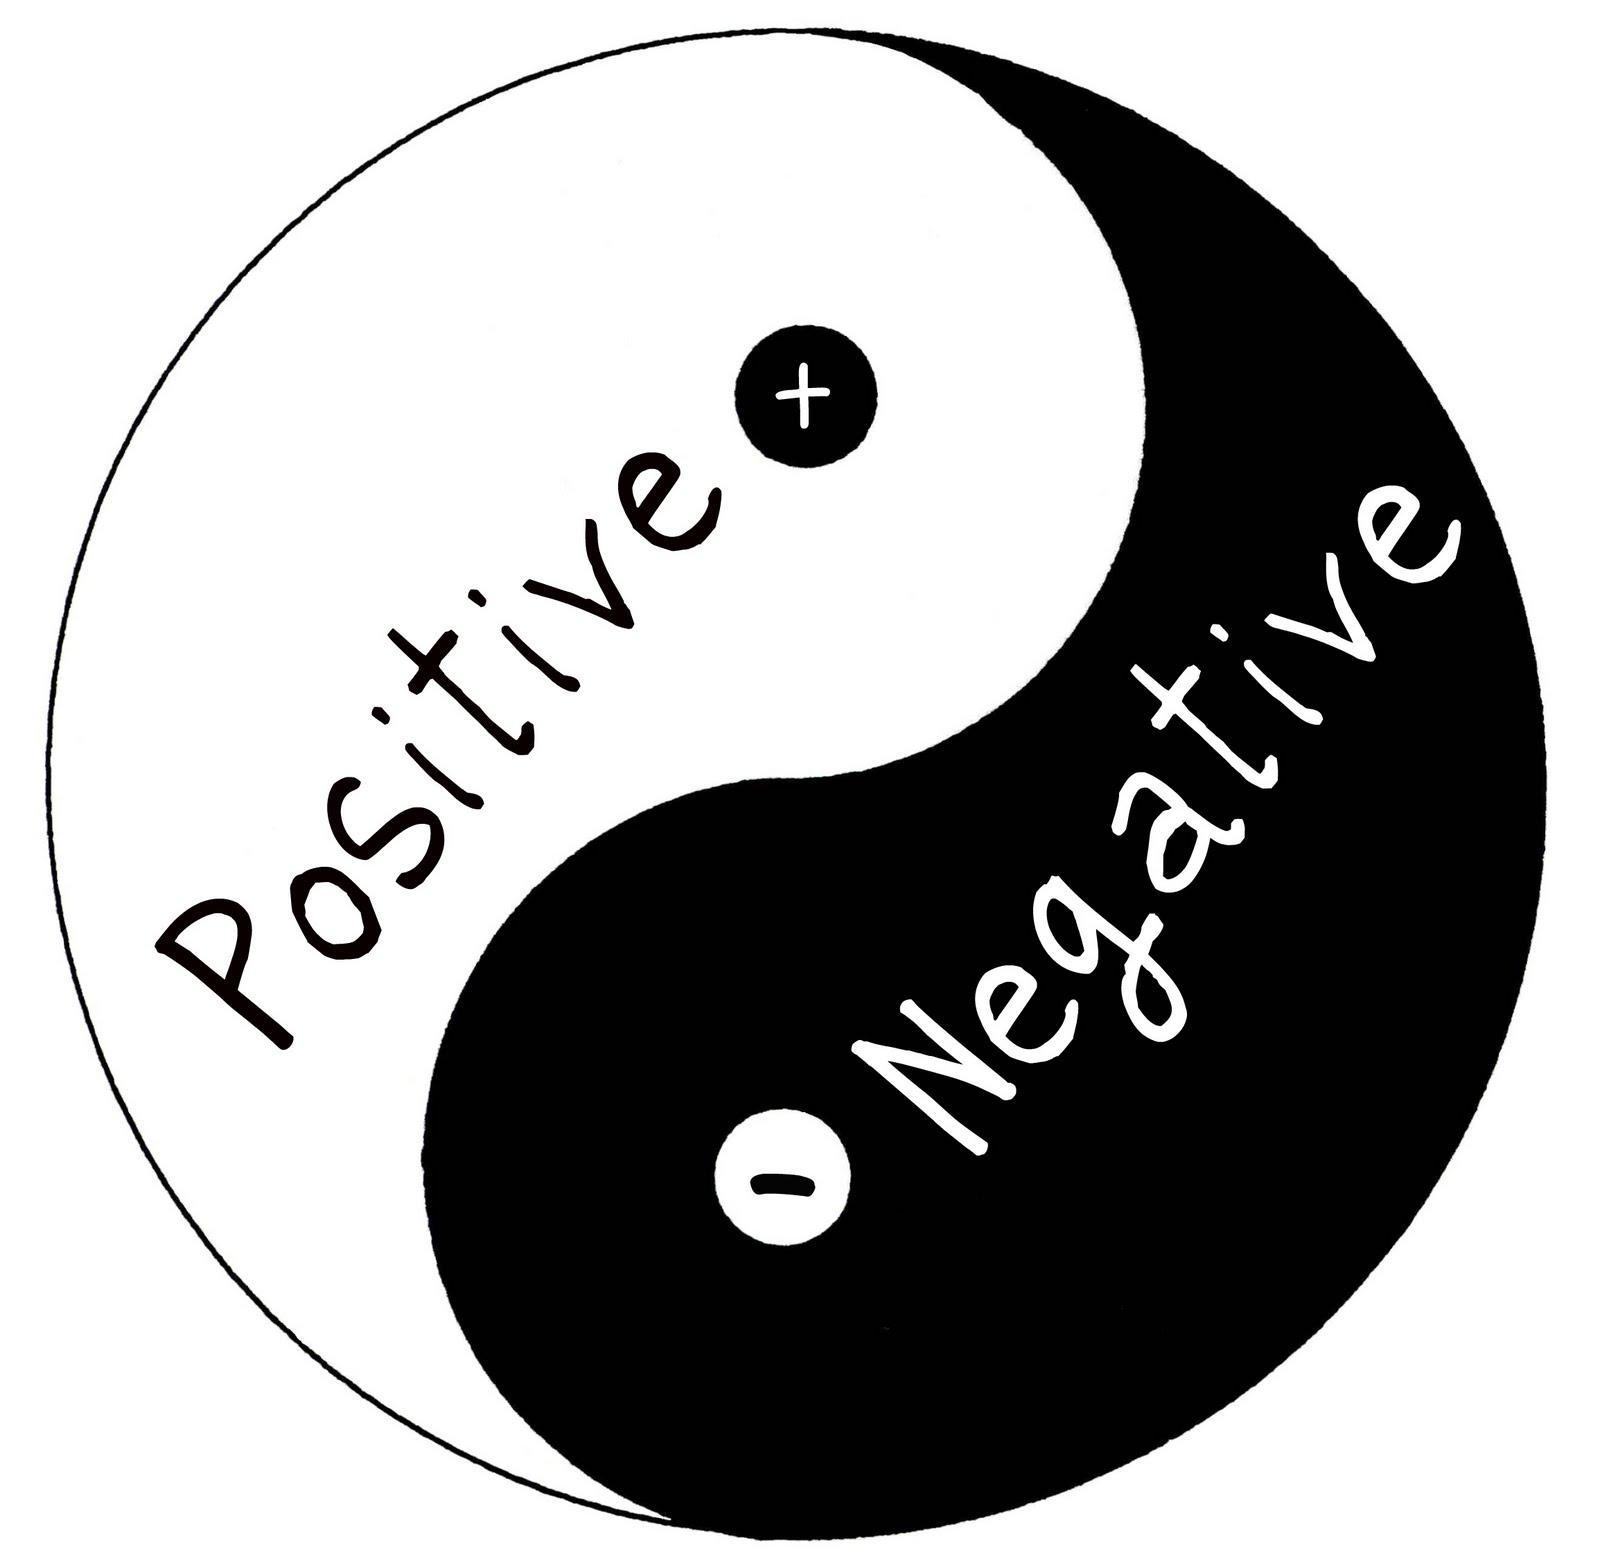 Are you a Positive or Negative Person?